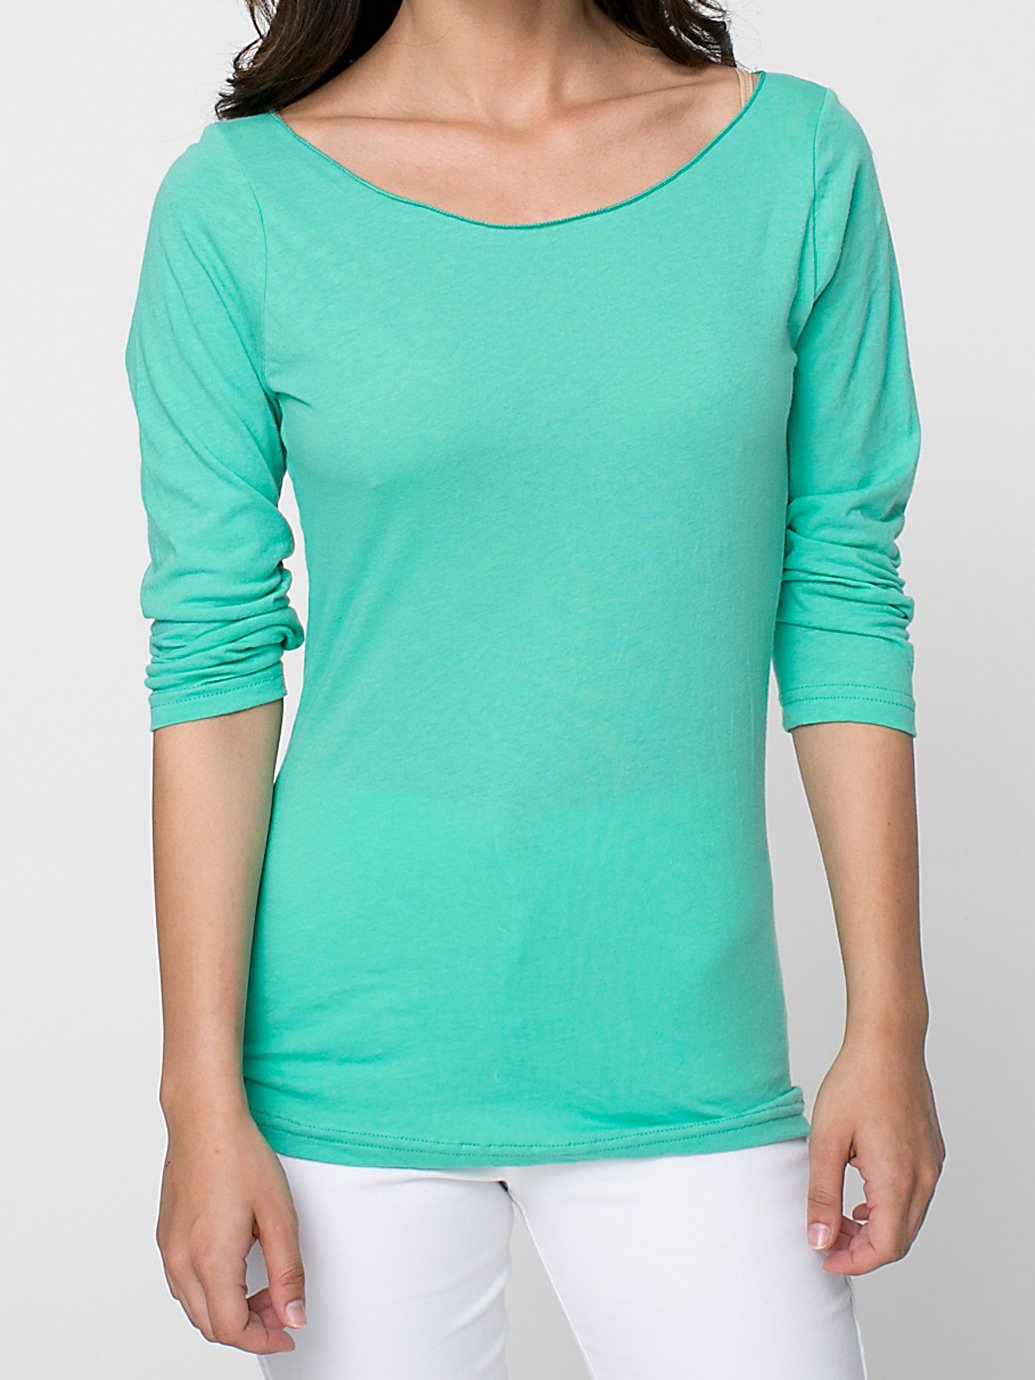 a3e1cccaae0 American Apparel Sheer Jersey 3 4 Sleeve Boat Neck - Evan Webster INK